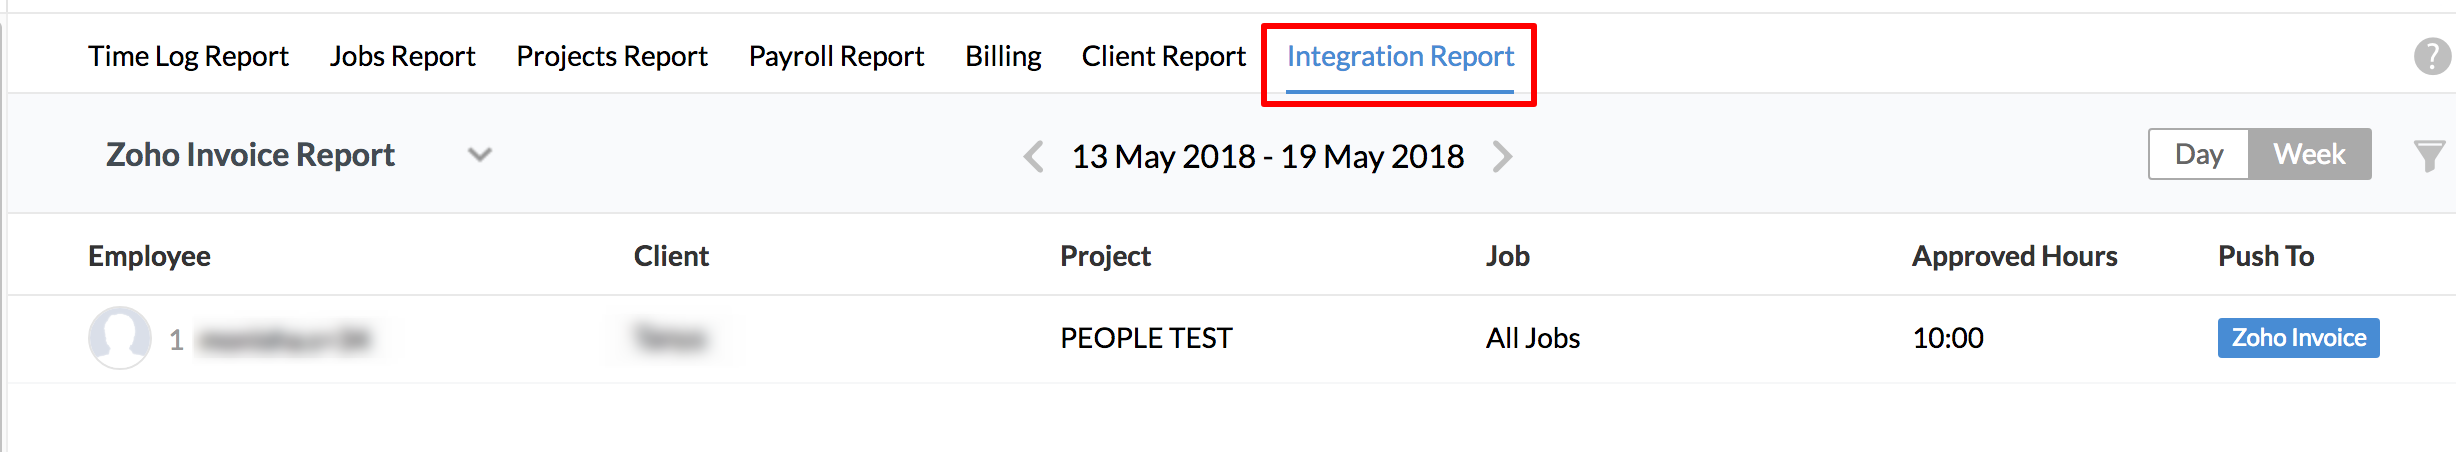 Integration Reports